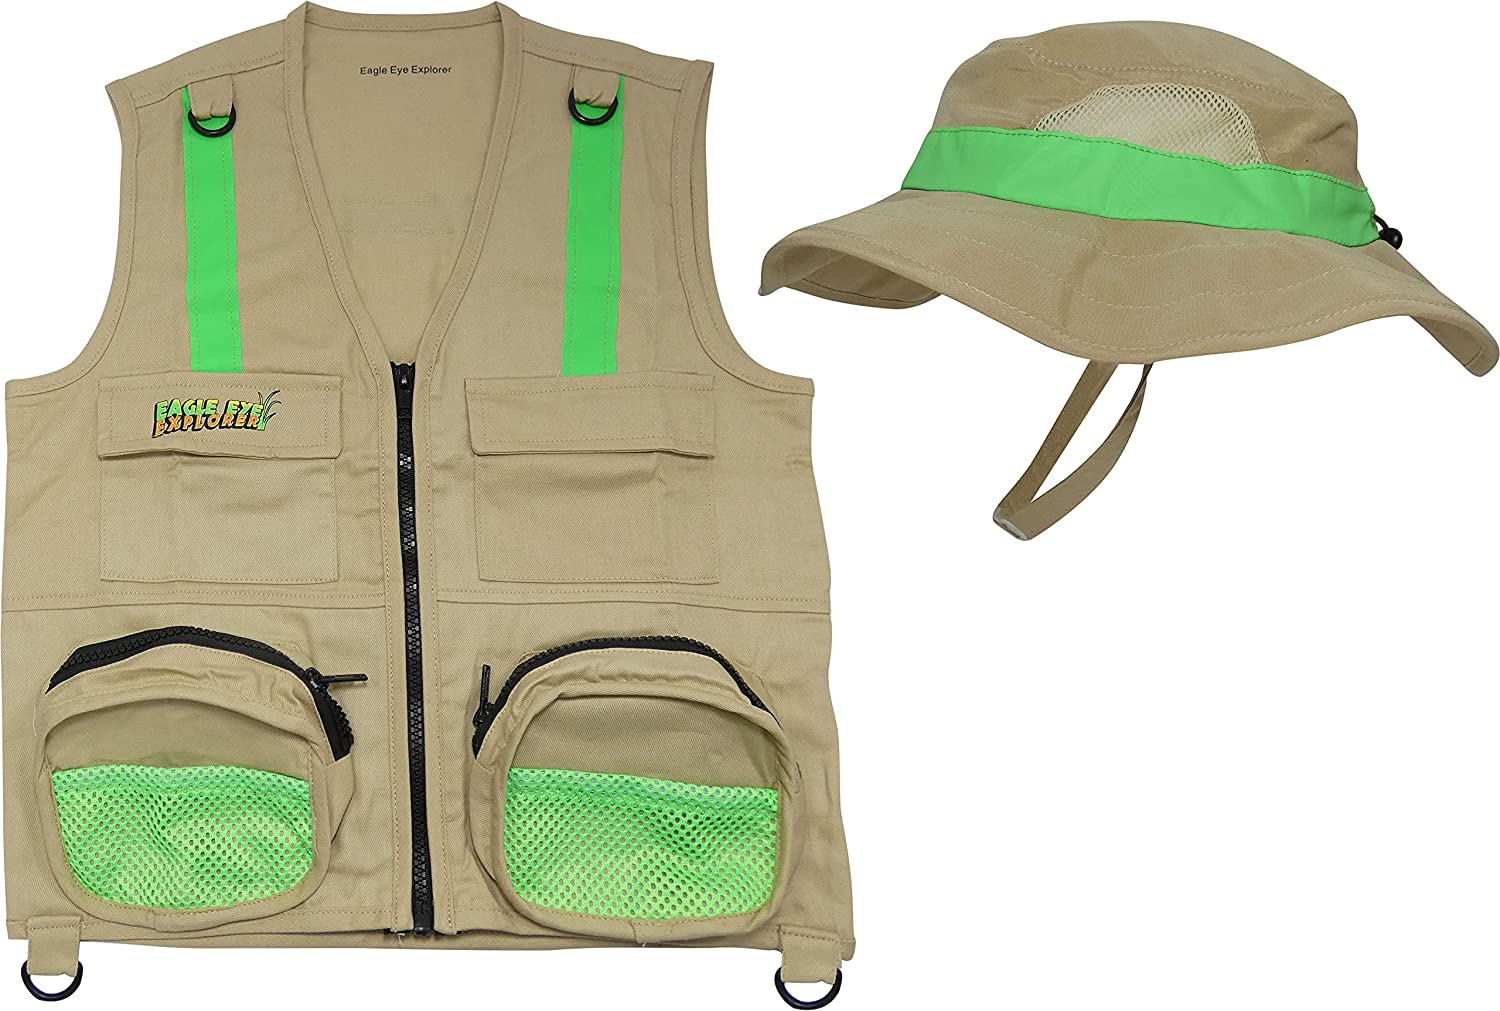 Eagle wholesale Eye Explorer X-Small Combination Directly managed store Set Gir Boys Safe for and